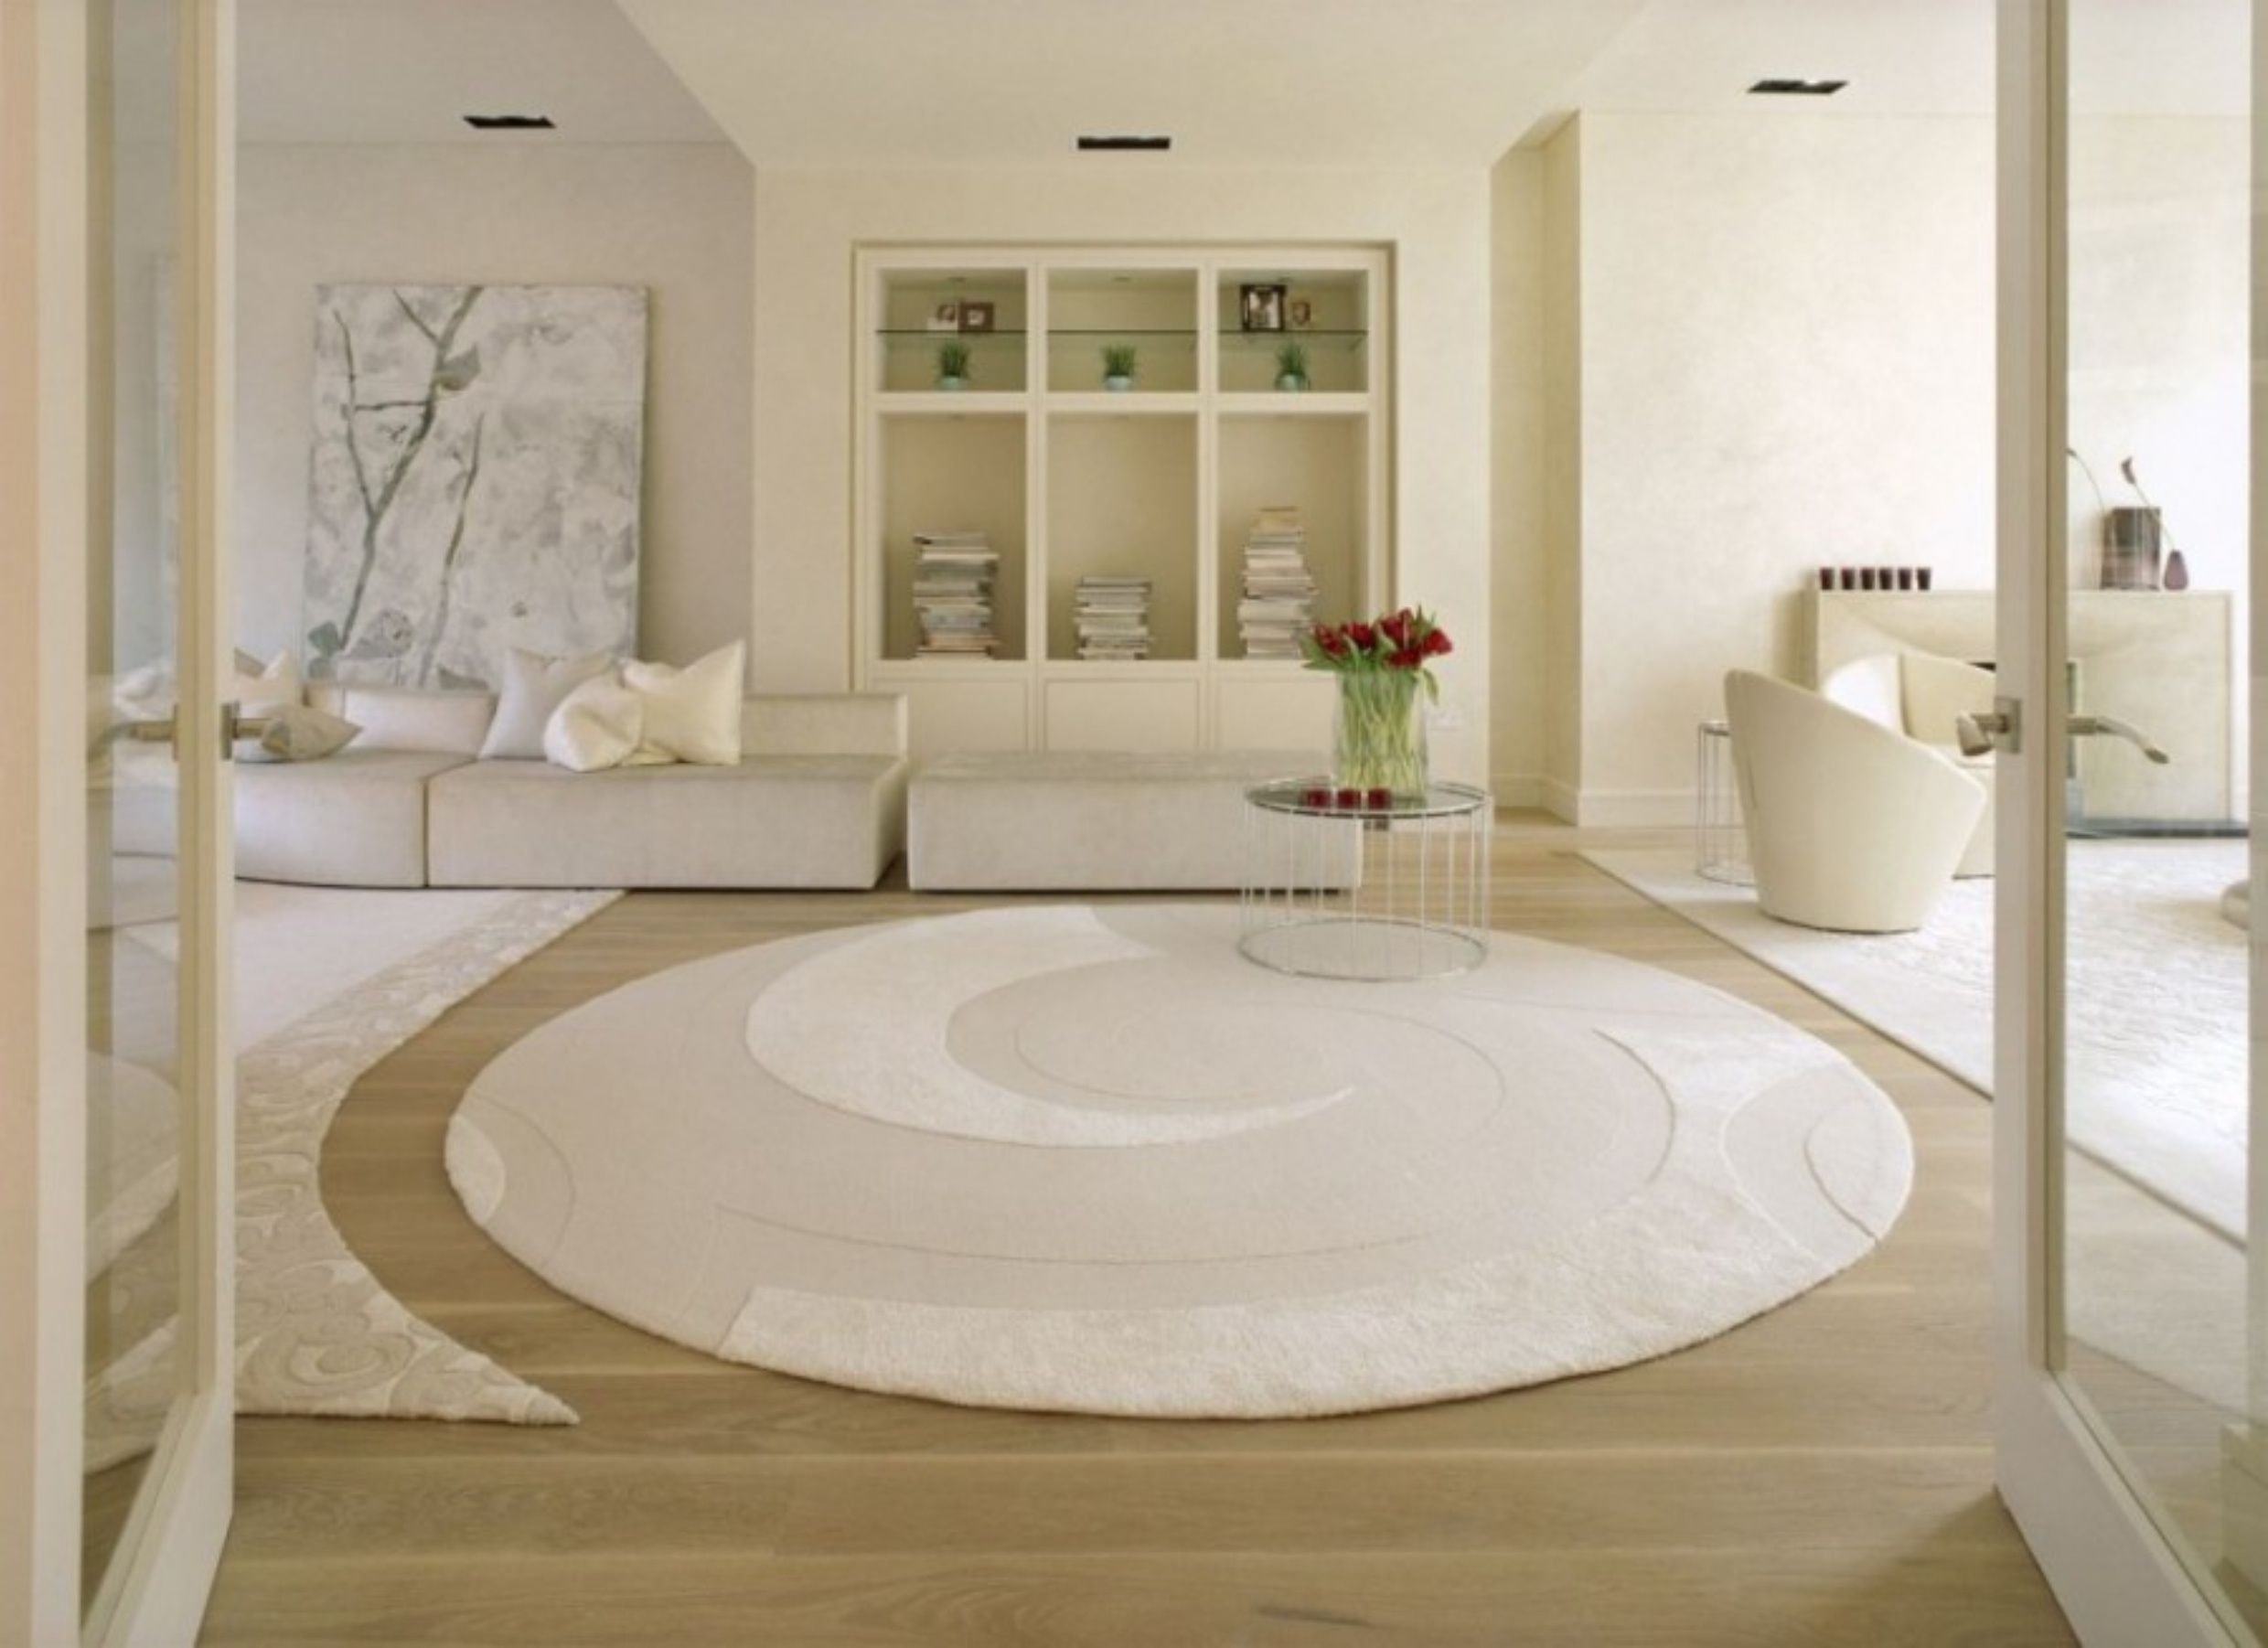 White Round Extra Large Bathroom Rug Large Bathroom Rugs Pinterest Large Bathroom Rugs